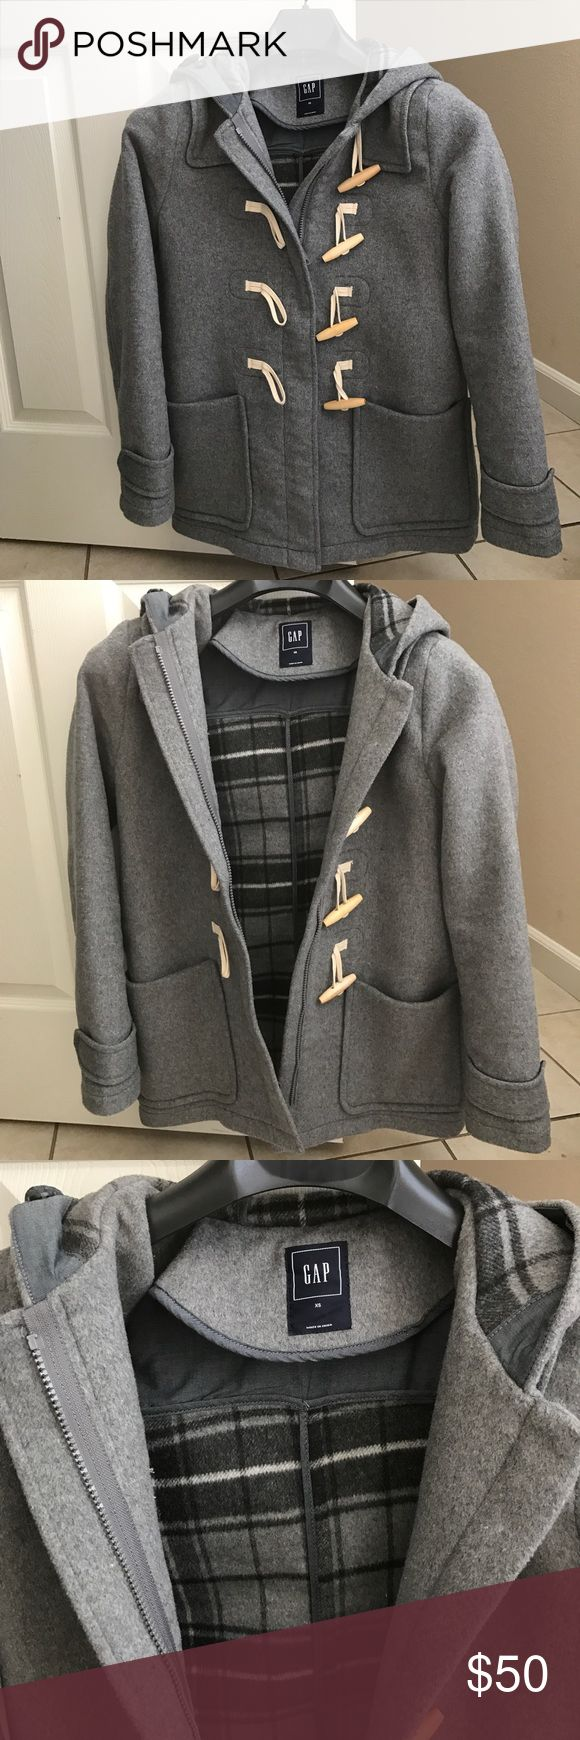 NWOT wool gap coat Ordered online turned out a little big for me GAP Jackets & Coats Pea Coats